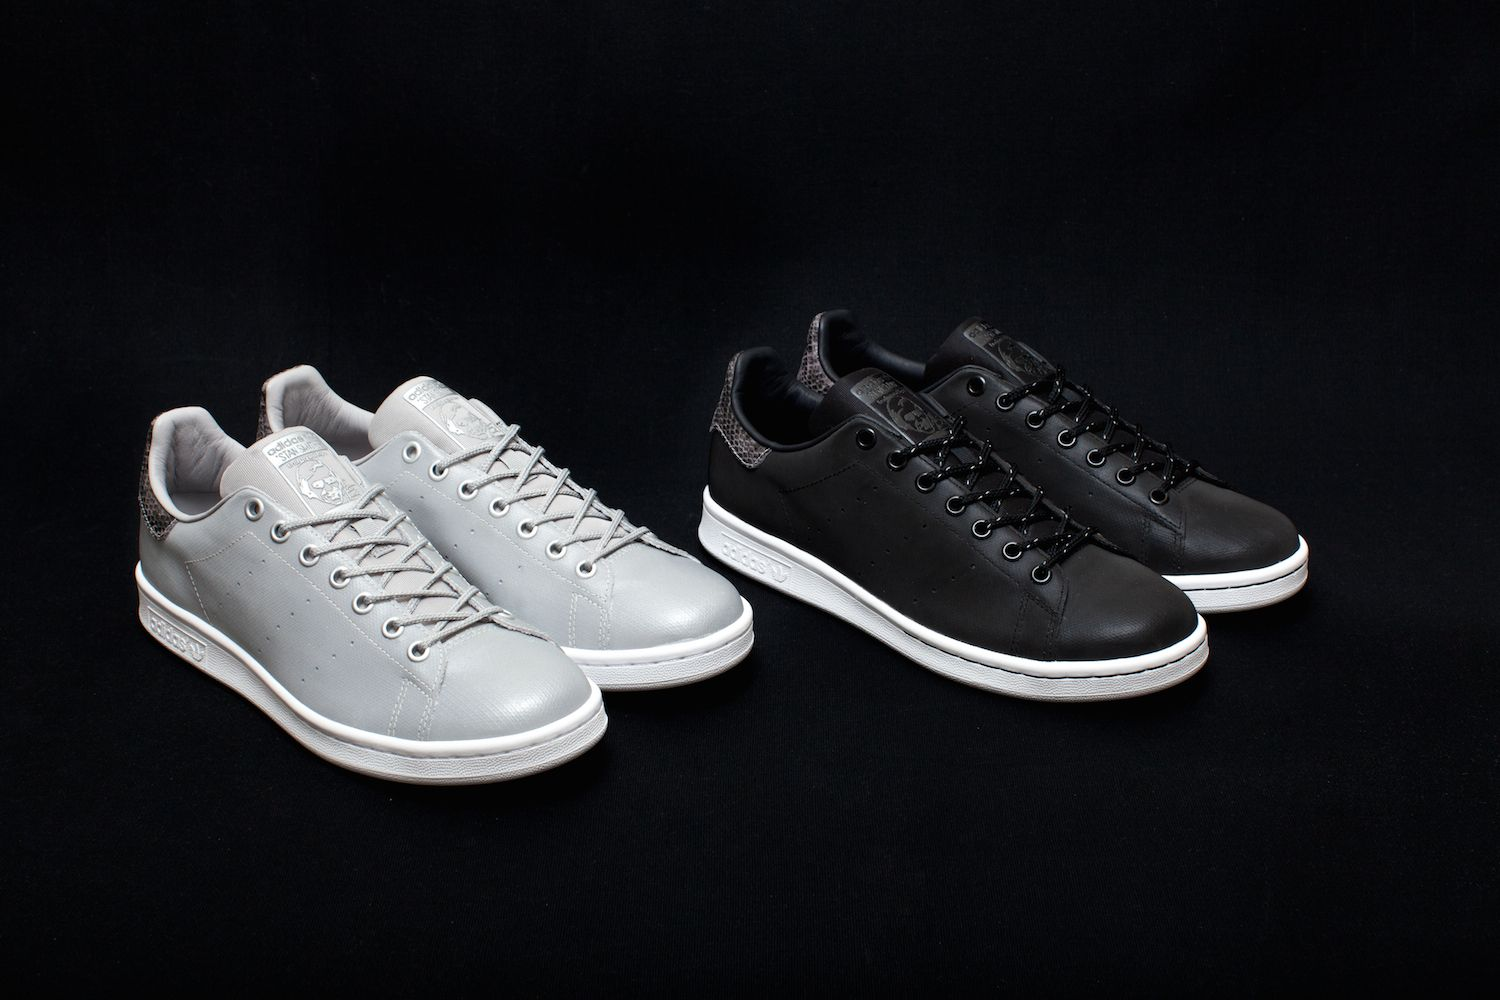 In another iteration of the iconic shoe, adidas Originals takes it up a notch with the Stan Smith Reflective pack.